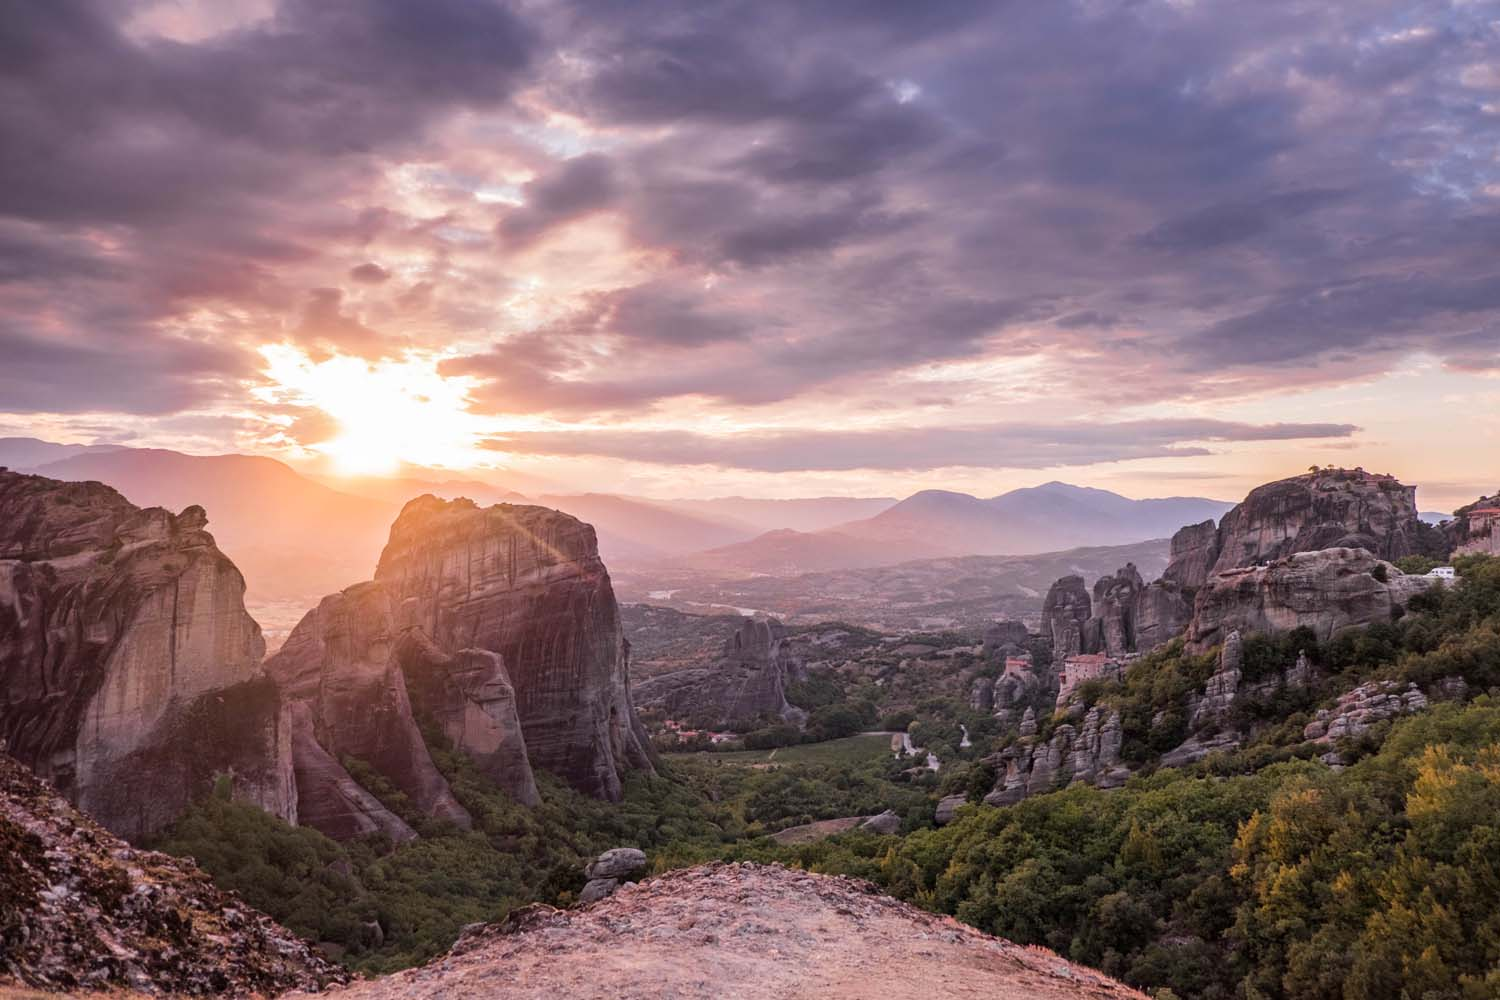 Looking for a Greek destination without blue & white houses and island vibes? Then you should visit Meteora, Greece - a UNESCO site with over 1500 rocks & ancient monasteries.